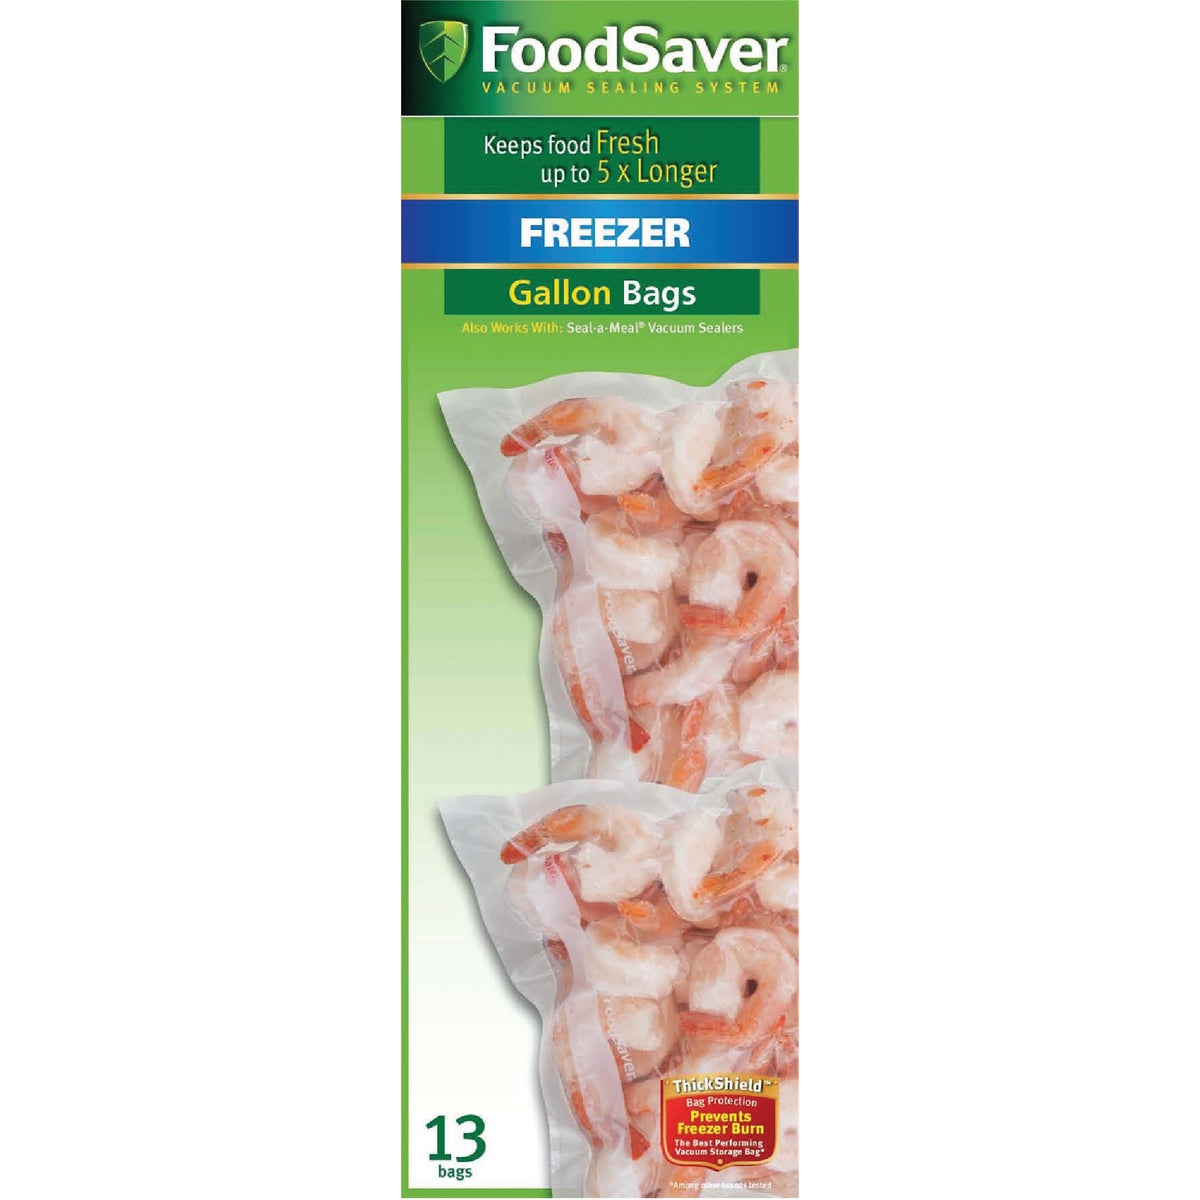 GALLON FOODSAVER BAGS - FSFSBF0316-000 by Jarden Cs